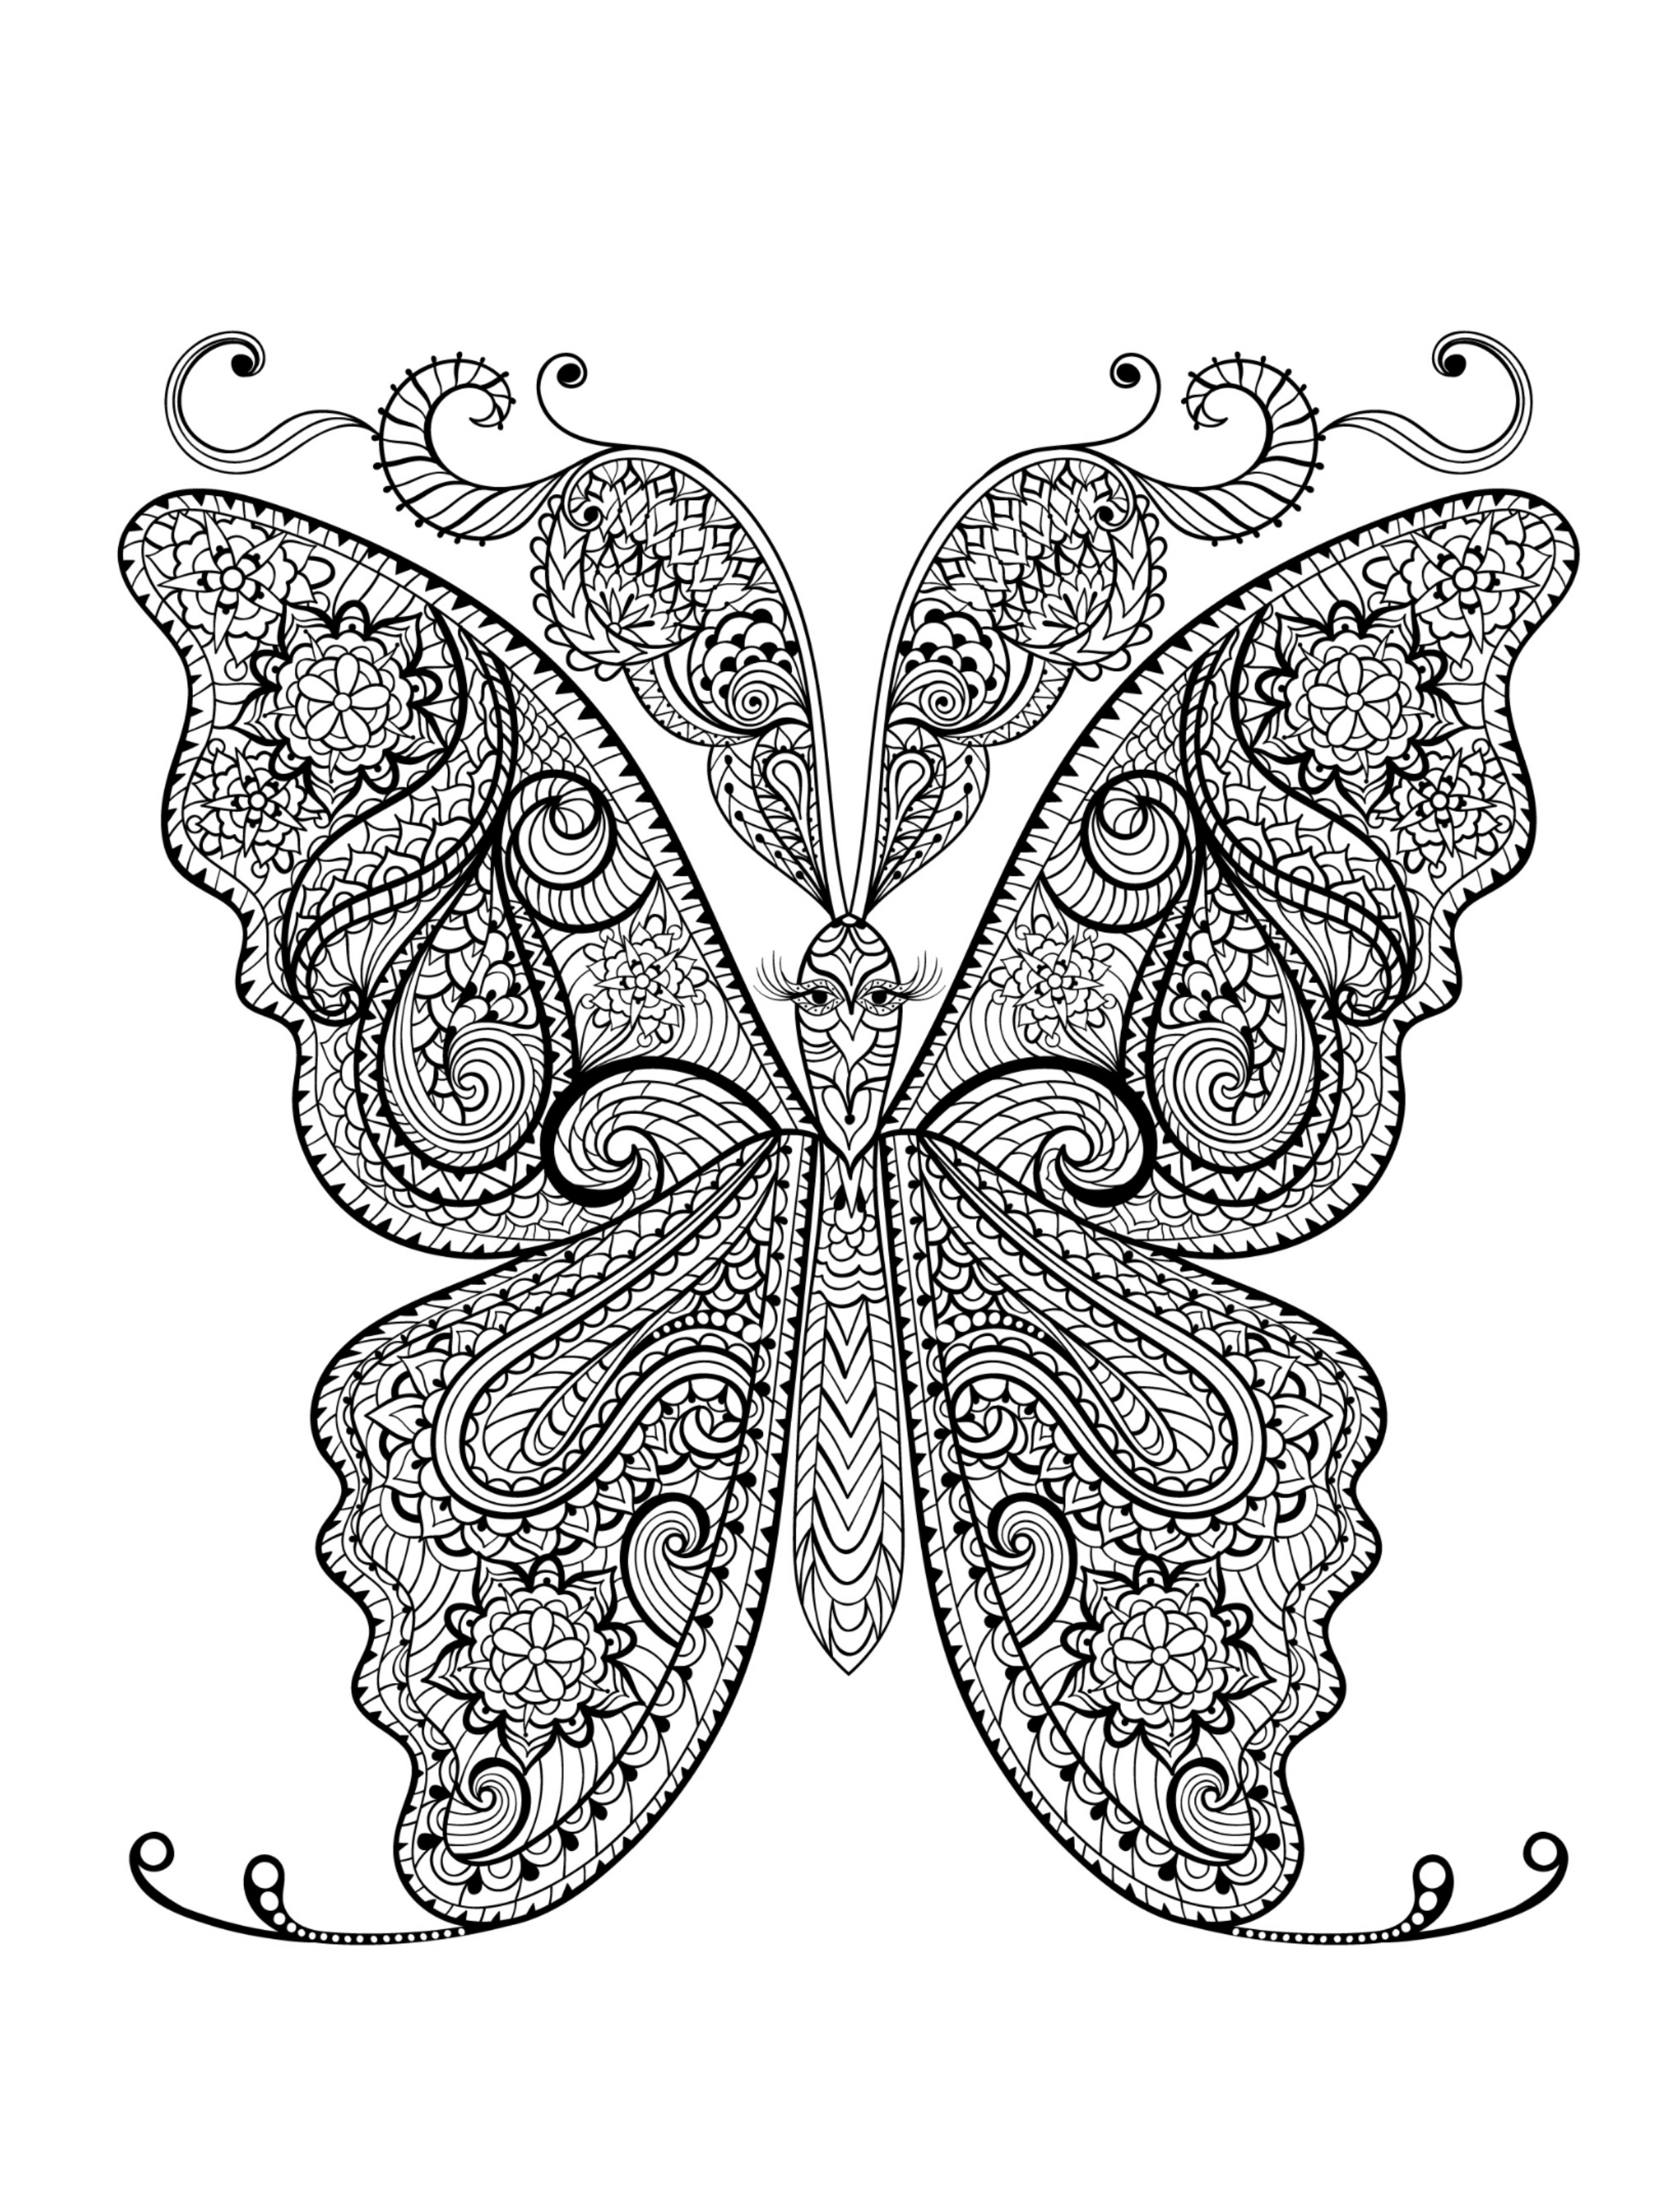 adult coloring pages animals animal coloring pages for adults best coloring pages for pages animals coloring adult